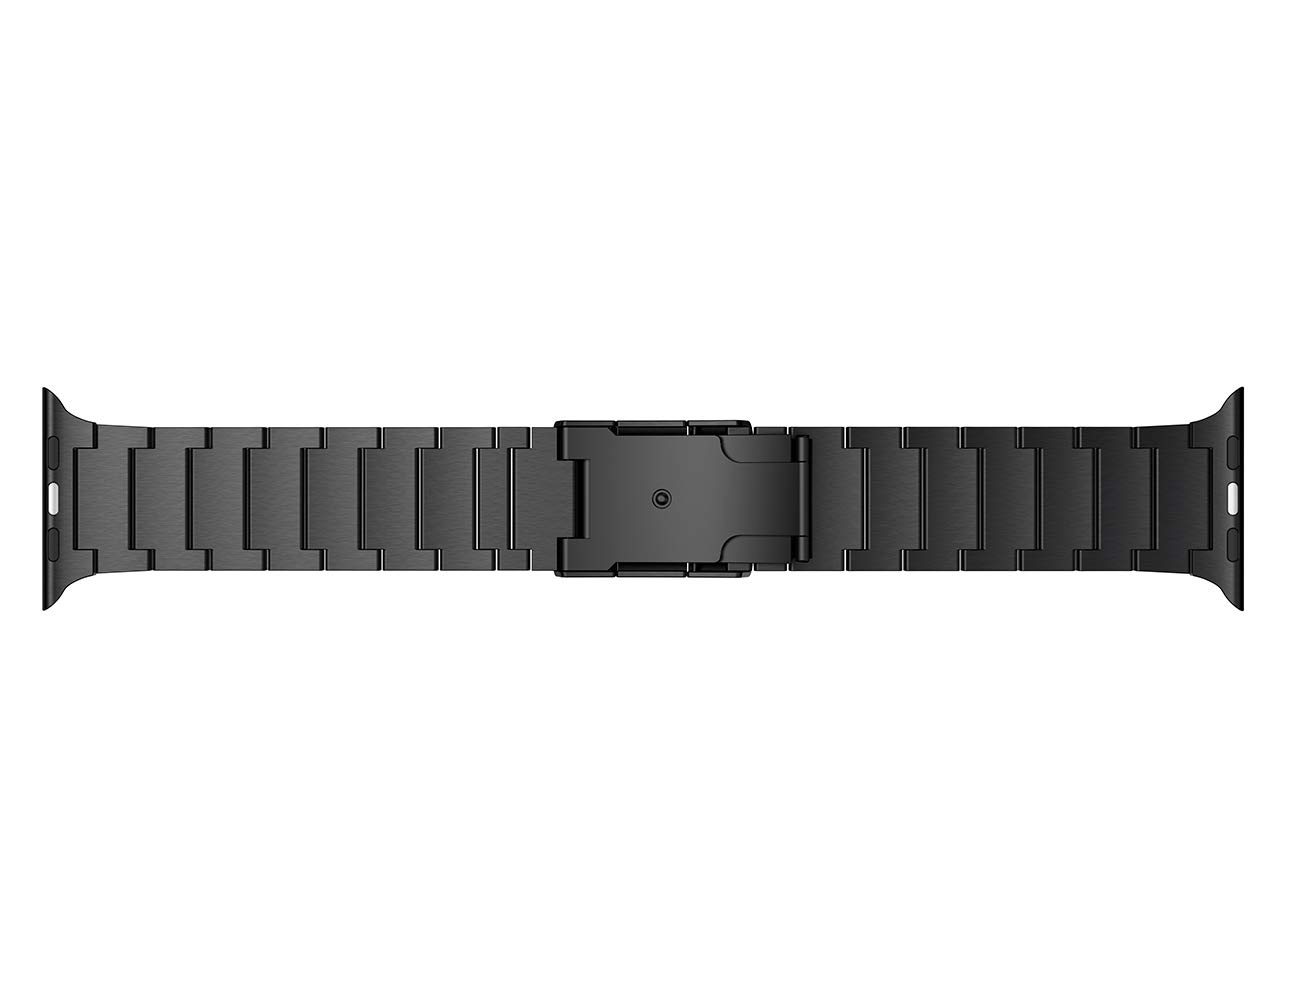 LDFAS Compatible for Apple Watch Band 44mm/42mm, Titanium Metal Watch Strap with Double Button Clasp Compatible for Apple Watch Series 4/3/2/1, Black by LDFAS (Image #5)